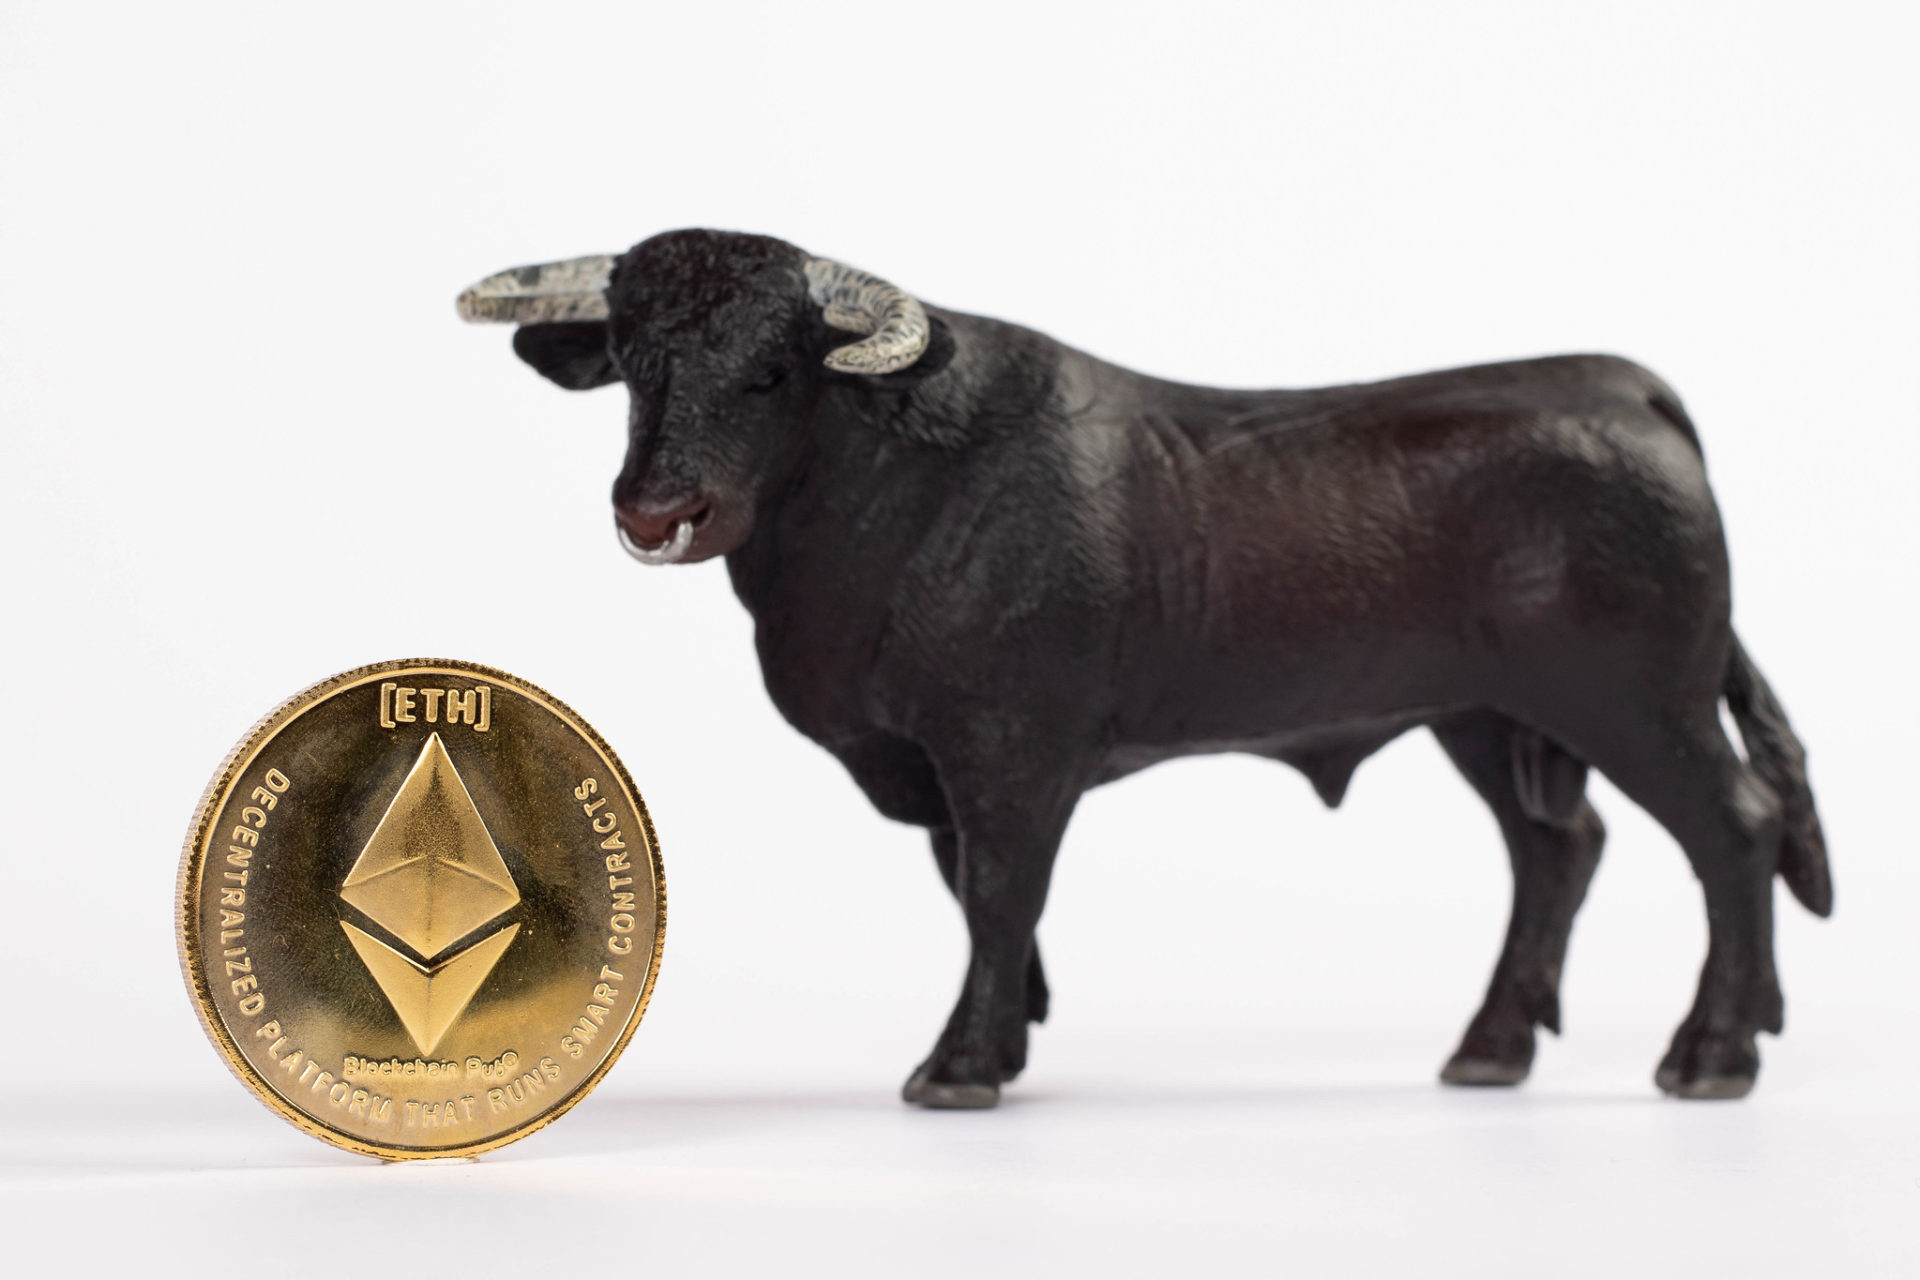 Ethereum Usage And Adoption Uptick Has Analysts Bullish On ETH 13